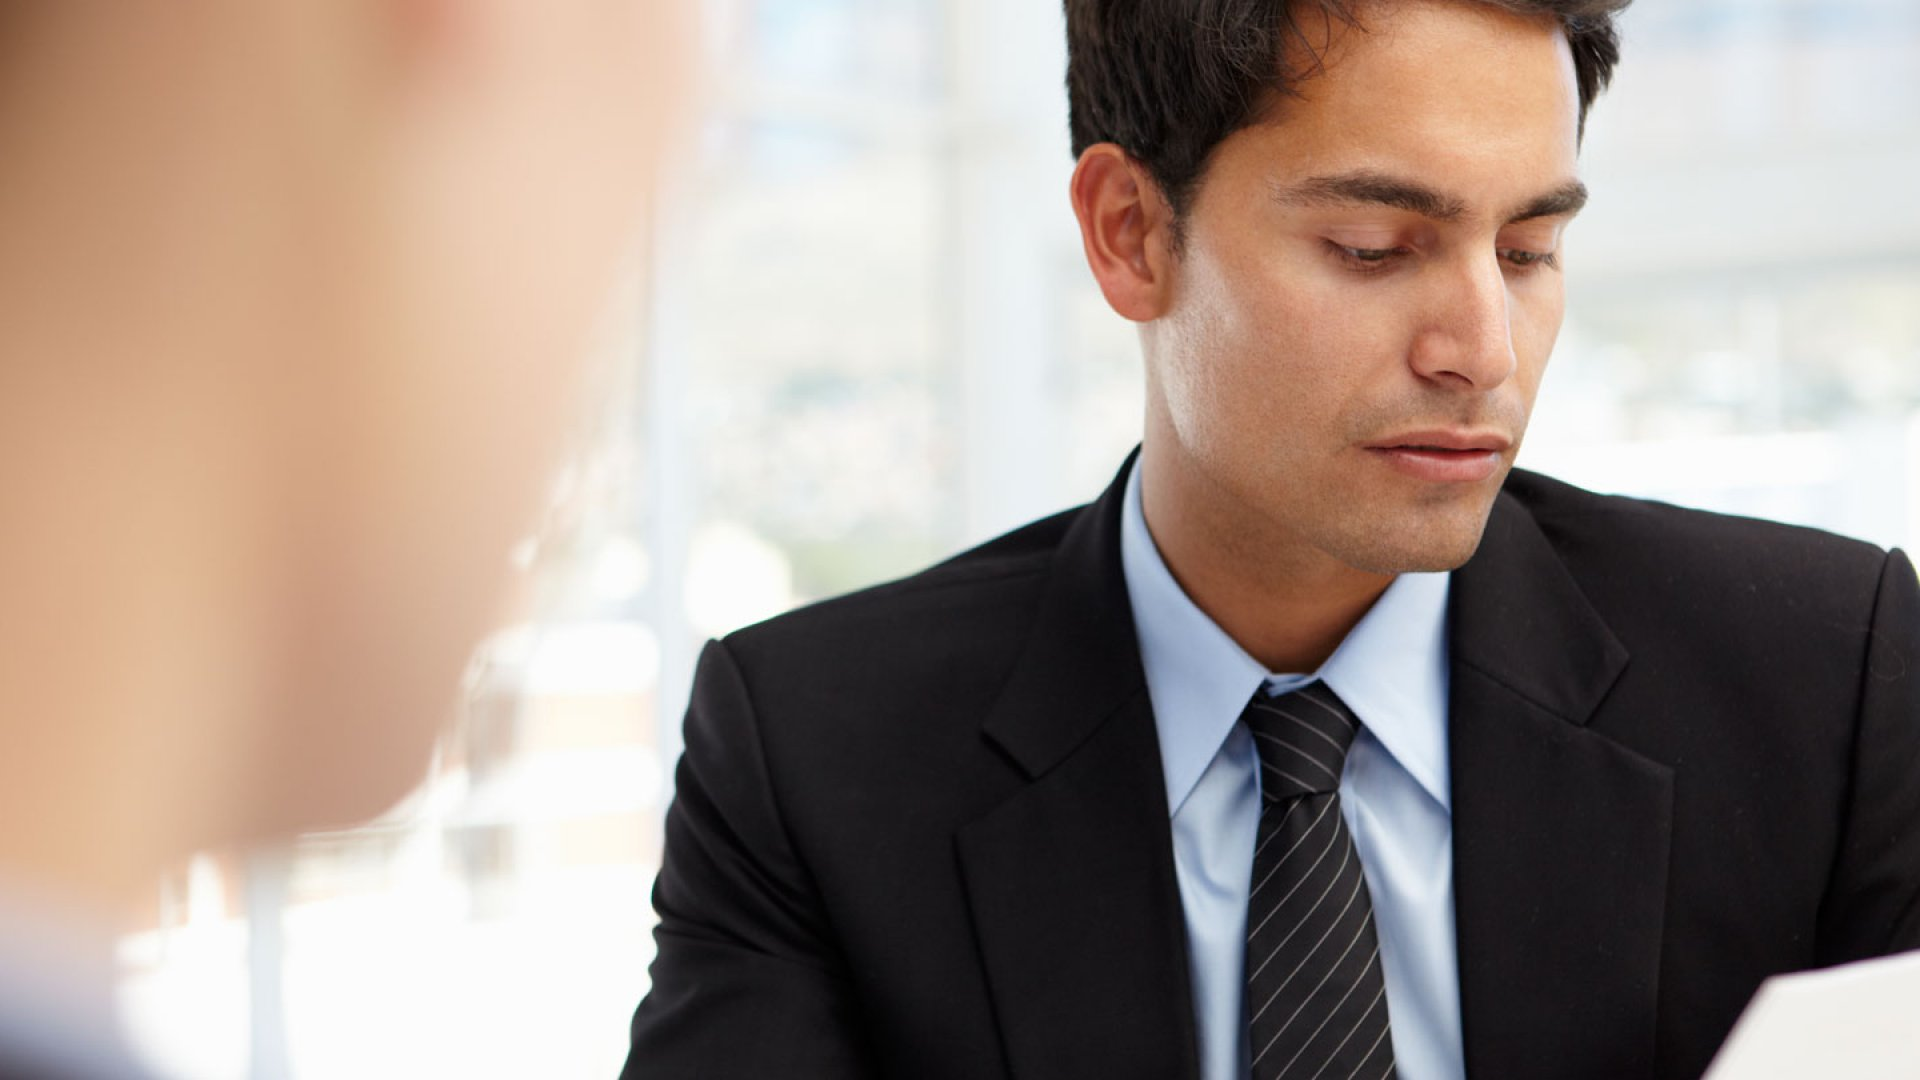 9 Things You Wish Job Candidates Knew